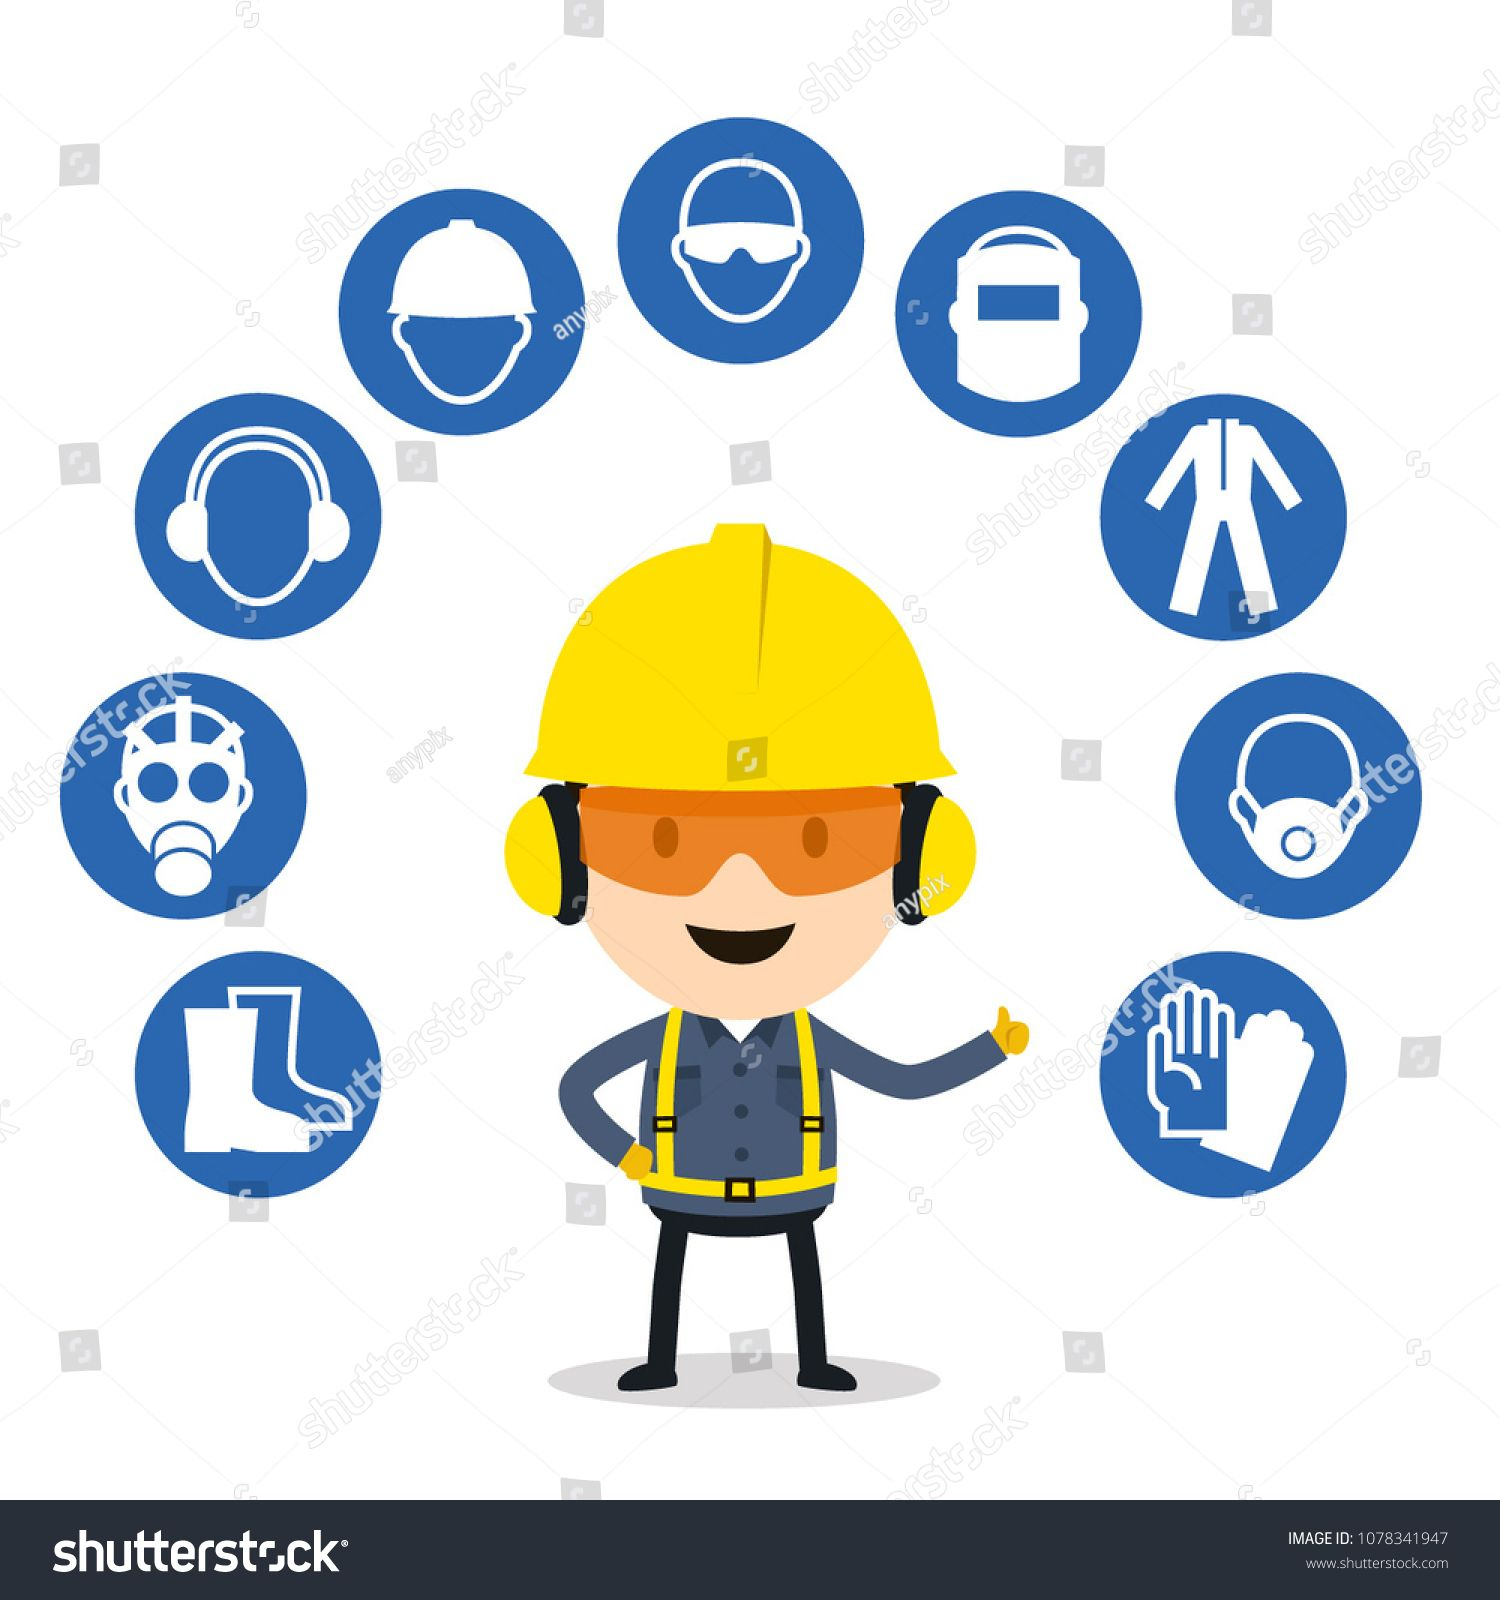 Personal protective equipment and safety icons, Vector